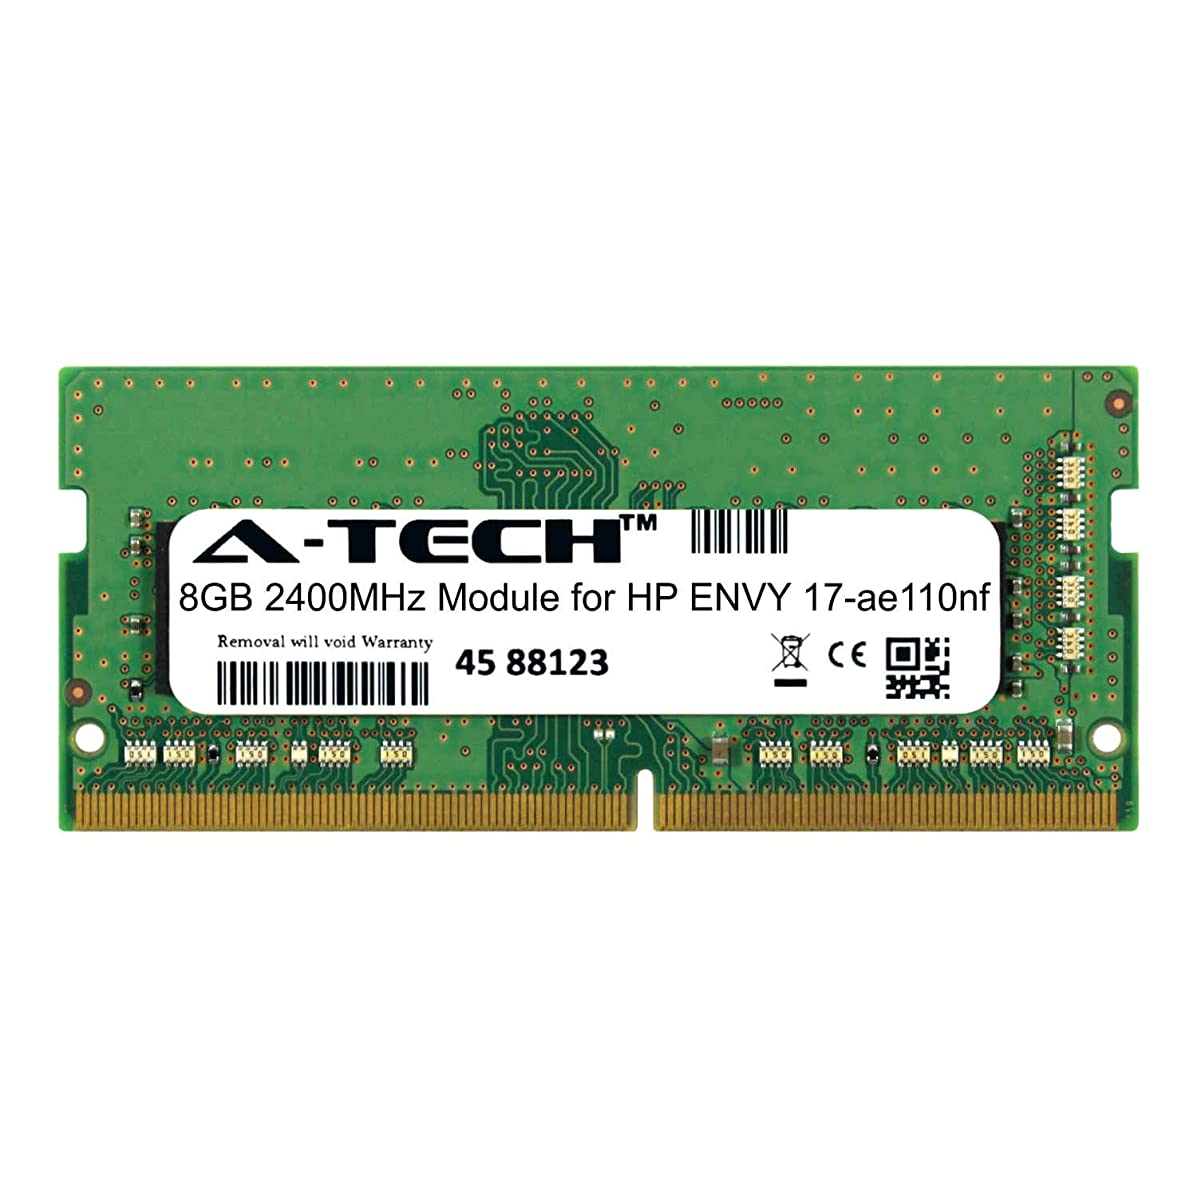 A-Tech 8GB Module for HP Envy 17-ae110nf Laptop & Notebook Compatible DDR4 2400Mhz Memory Ram (ATMS273949A25827X1)